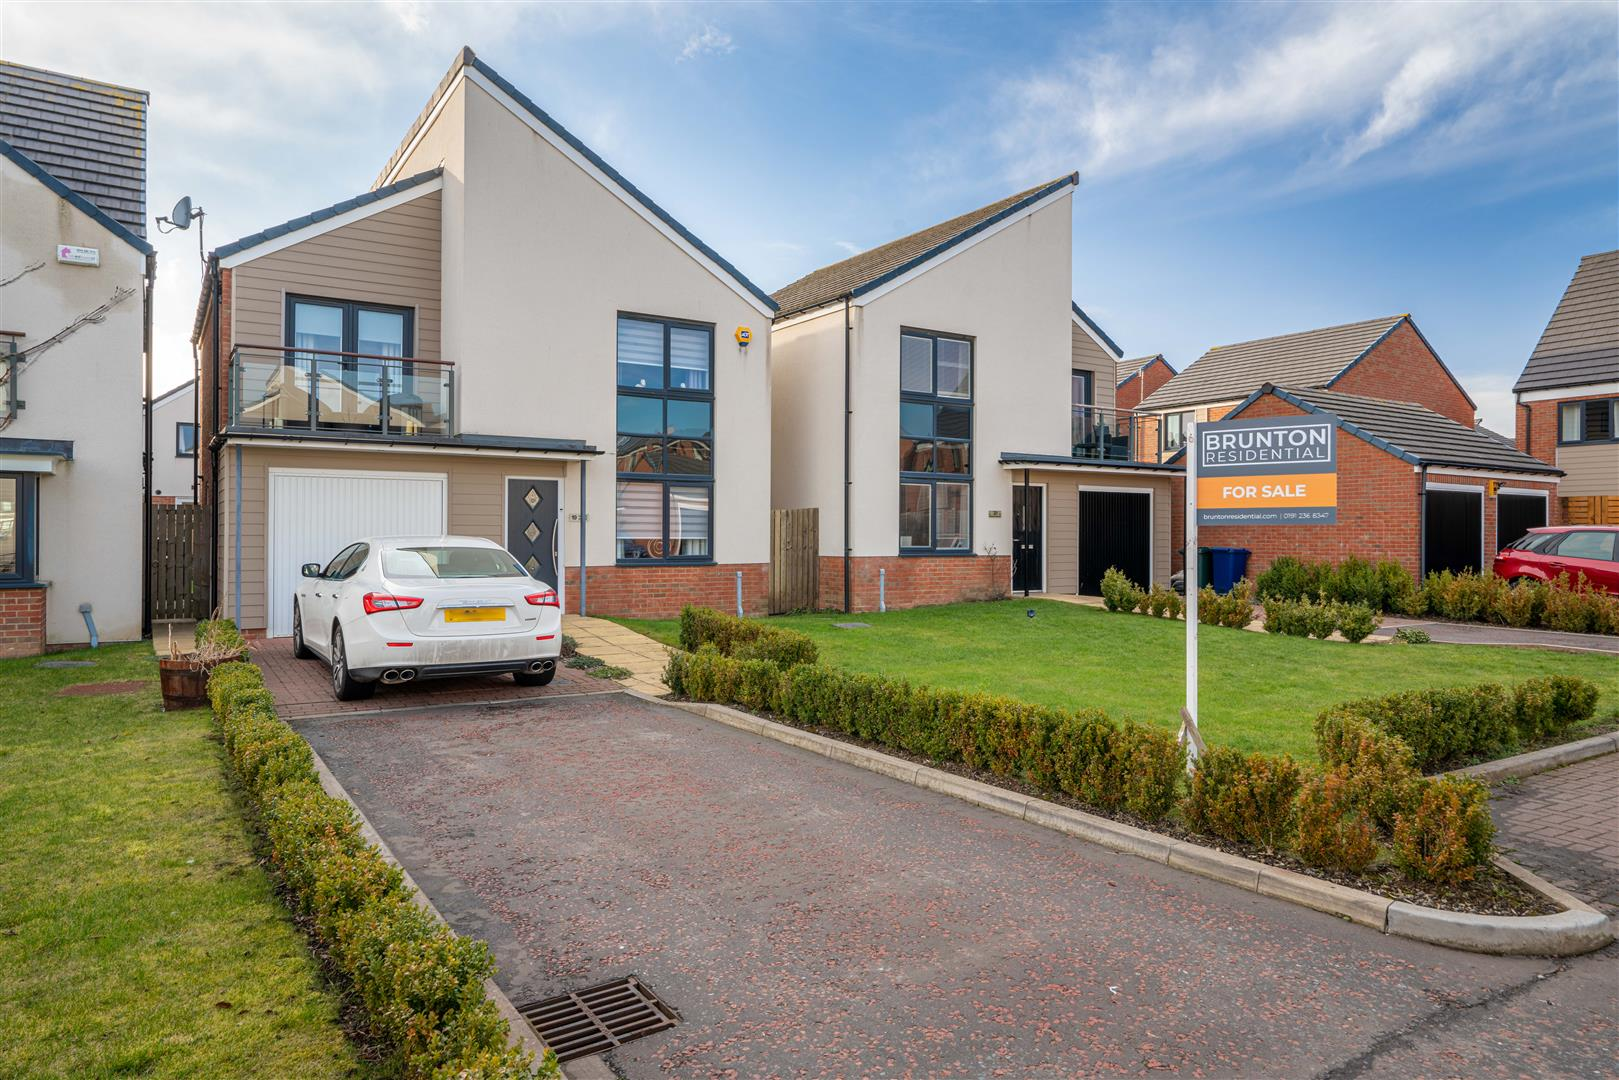 4 bed detached house for sale in Great Park, NE13 9BU, NE13